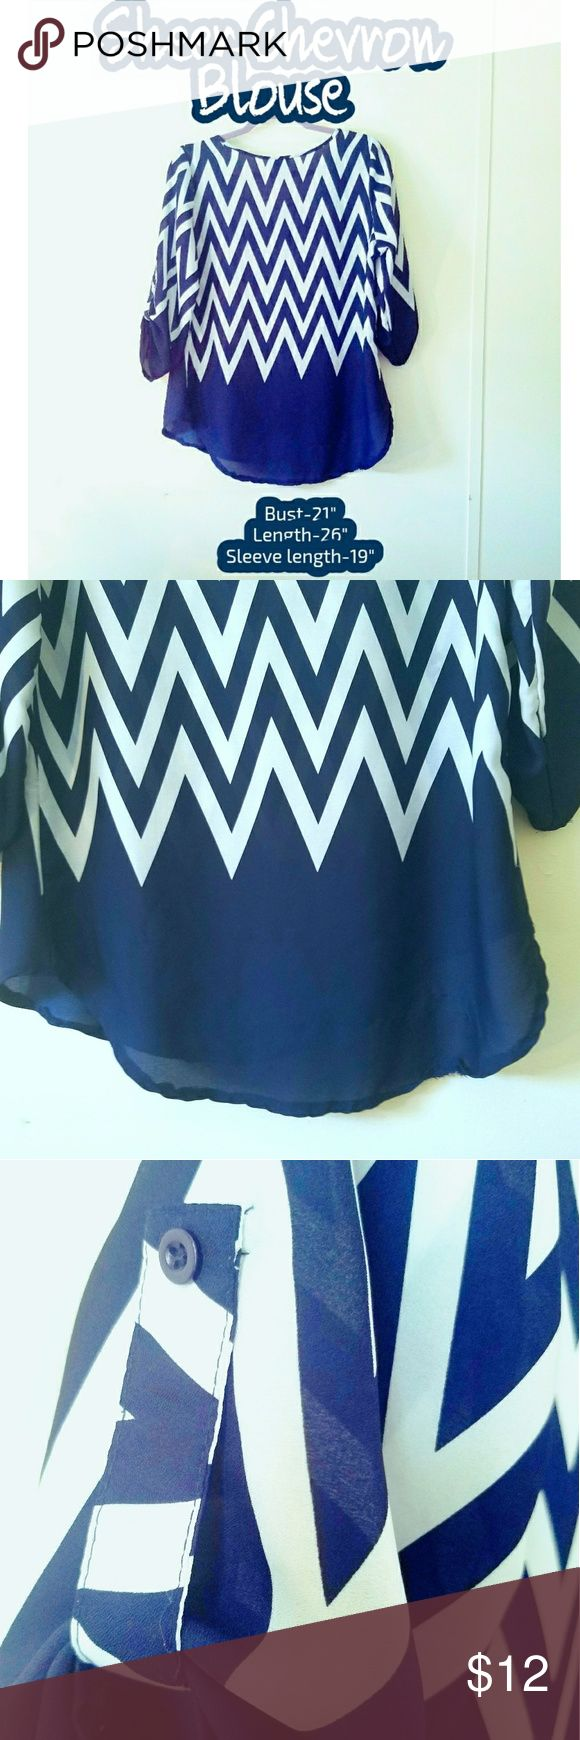 ⏬Chevron Blouse⏬ Dark blue sheer chevron blouse. Rue 21 brand. Measurements on cover picture.  ✔Negotiations welcome (reasonable)✔  🚫No trades🚫   💵Bundles get a private discount💵  ⛤I am a 5 star rated seller⛤  🚛I ship same day, next day at the lastest🚛  🚿All clothes get washed before packaging & shipment🚿 Rue 21 Tops Blouses